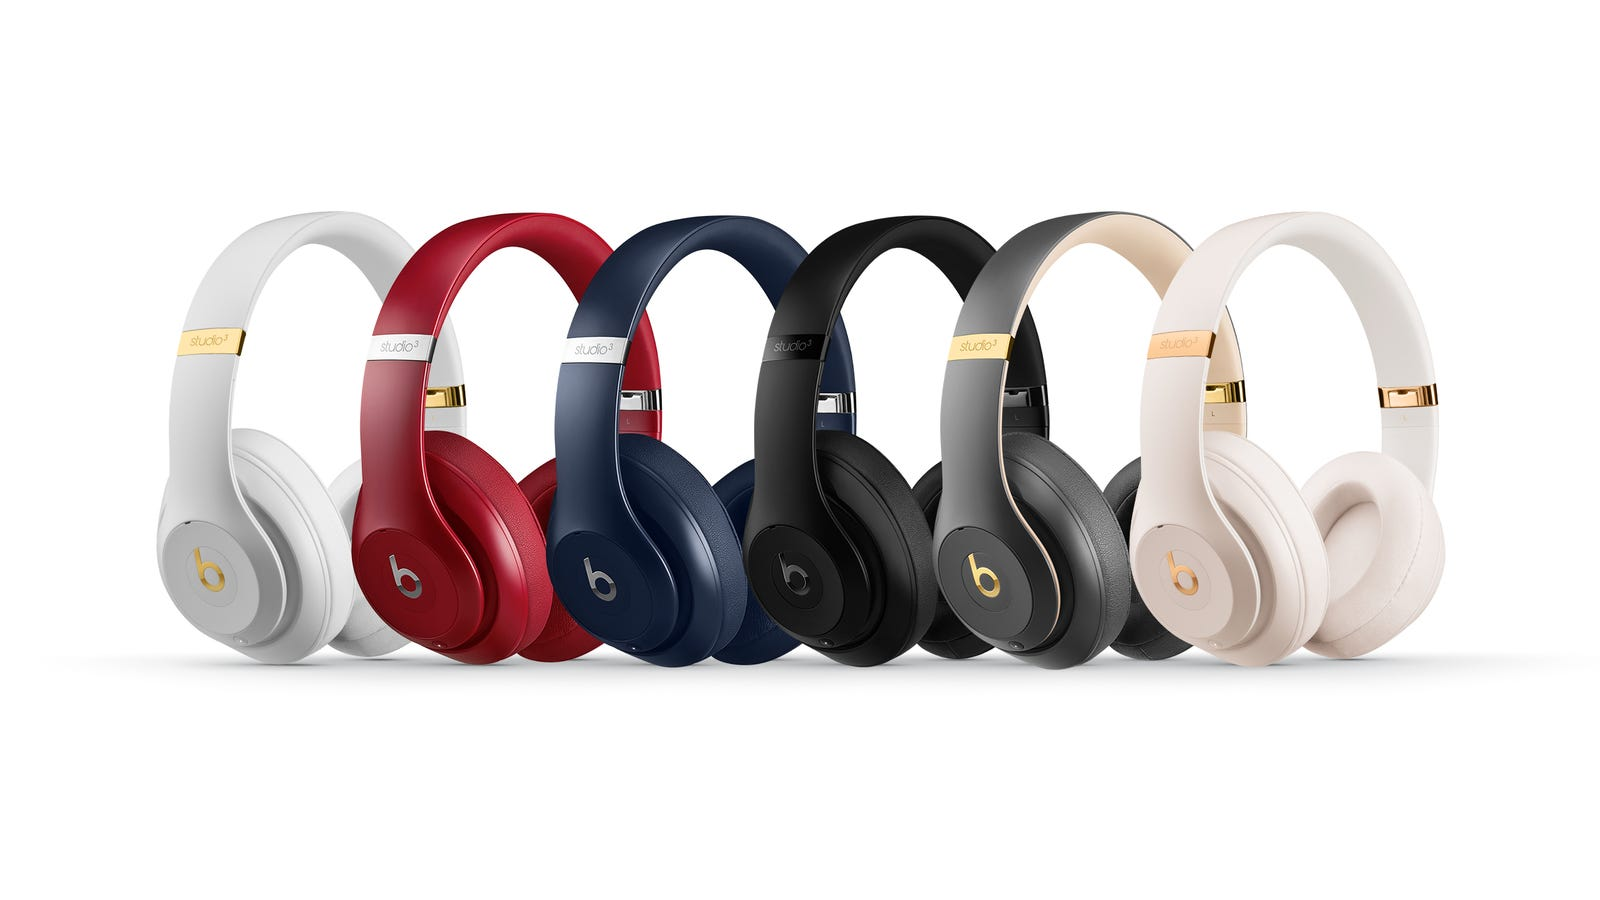 stereo earbuds wirless - Dr. Dre and Jimmy Iovine Ordered to Pay $25 Million to Former Beats Partner